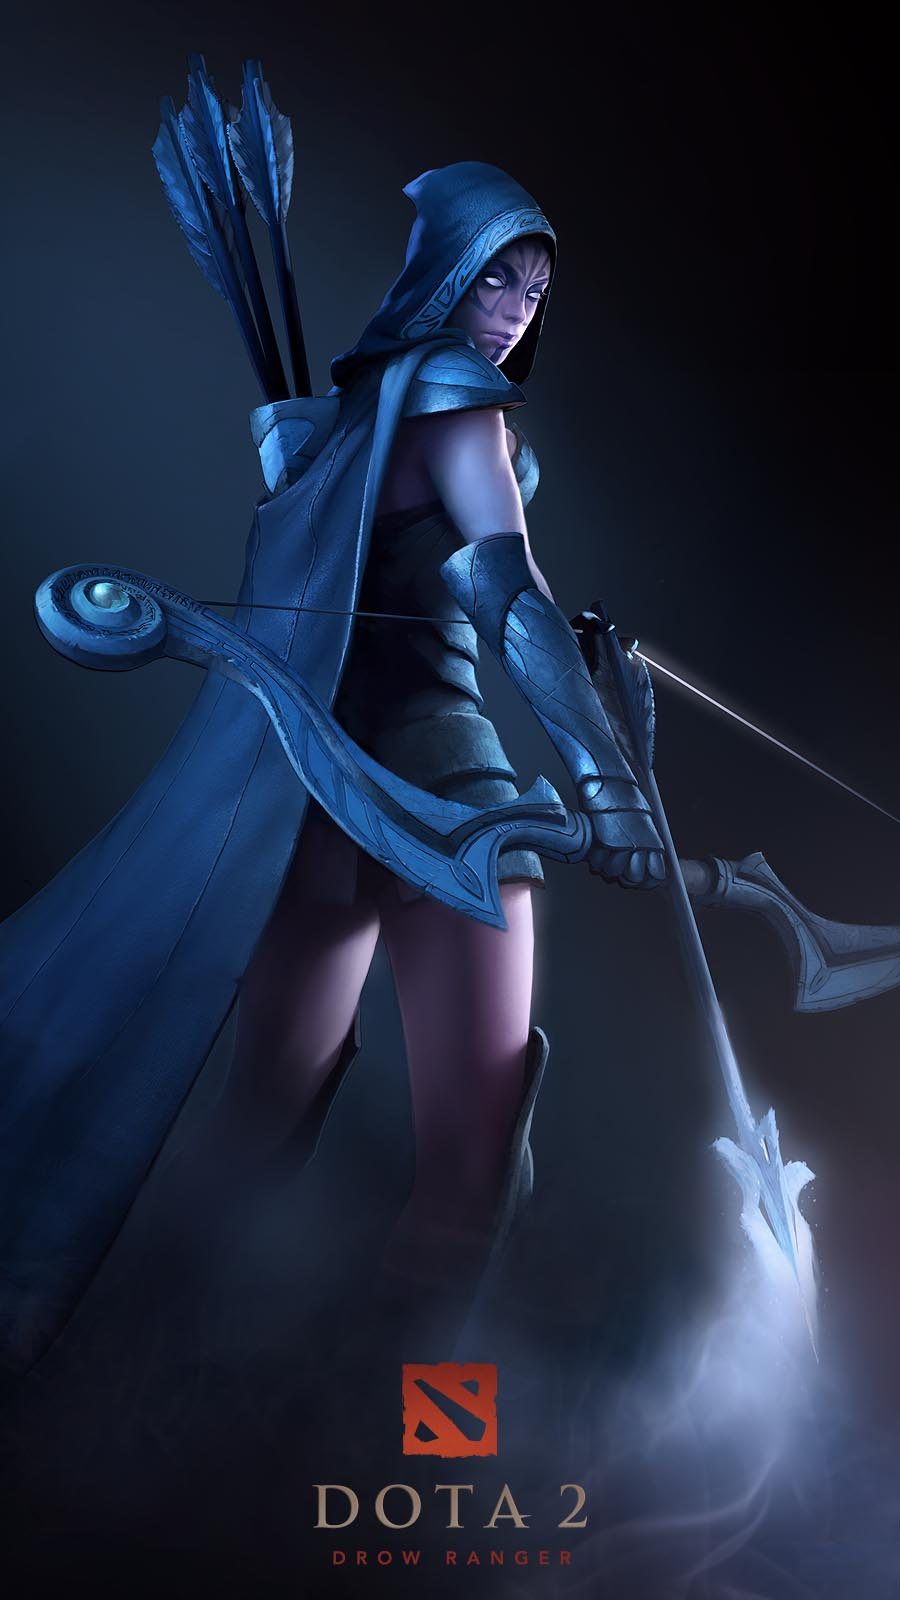 Dota 2 Drow Ranger Artwork Wallpaper